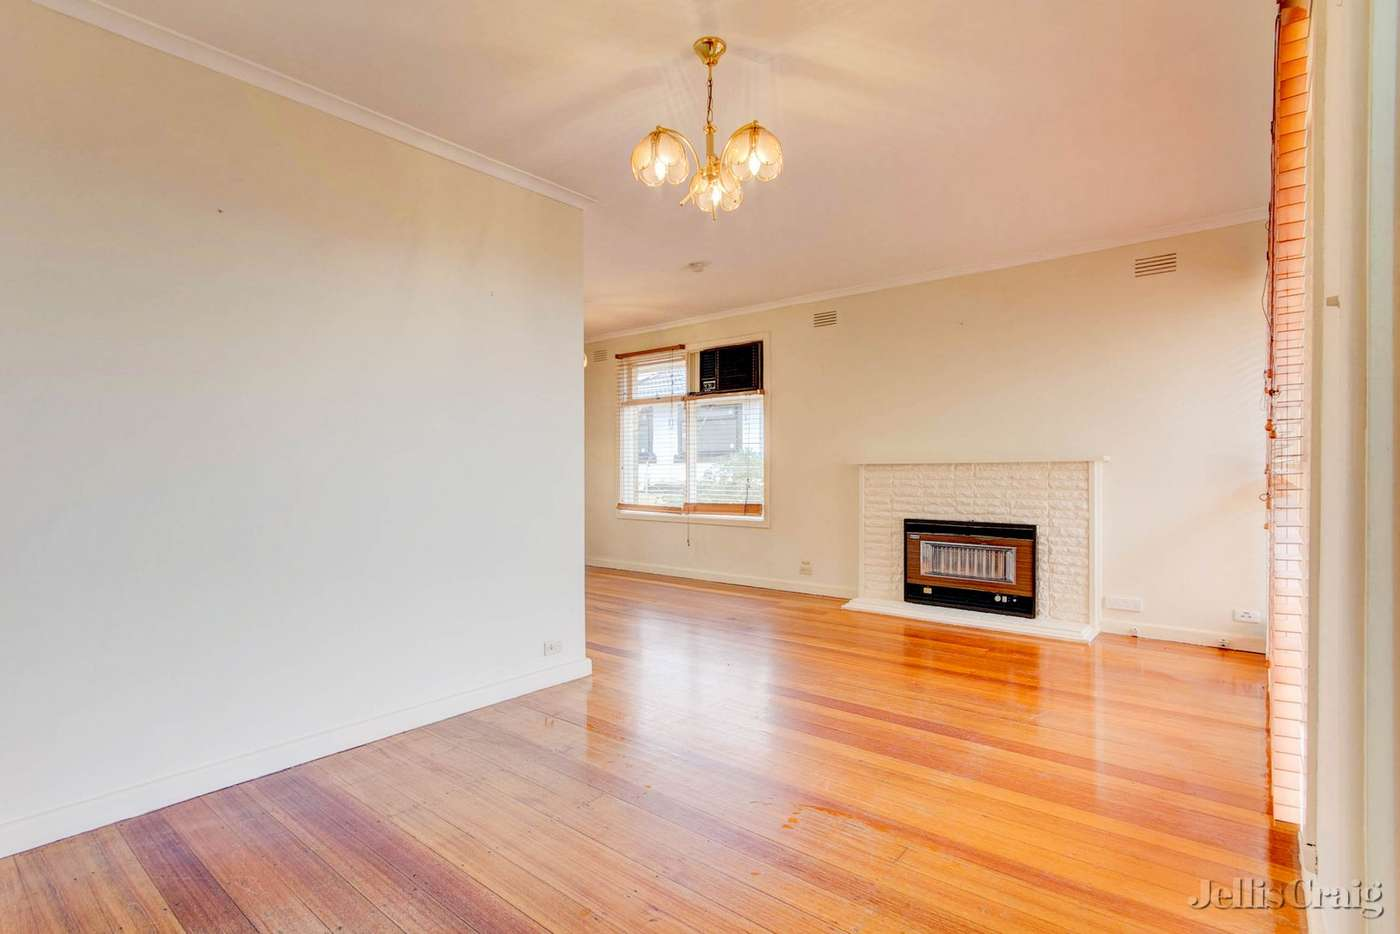 Sixth view of Homely house listing, 1/26 Baird Street North, Doncaster VIC 3108